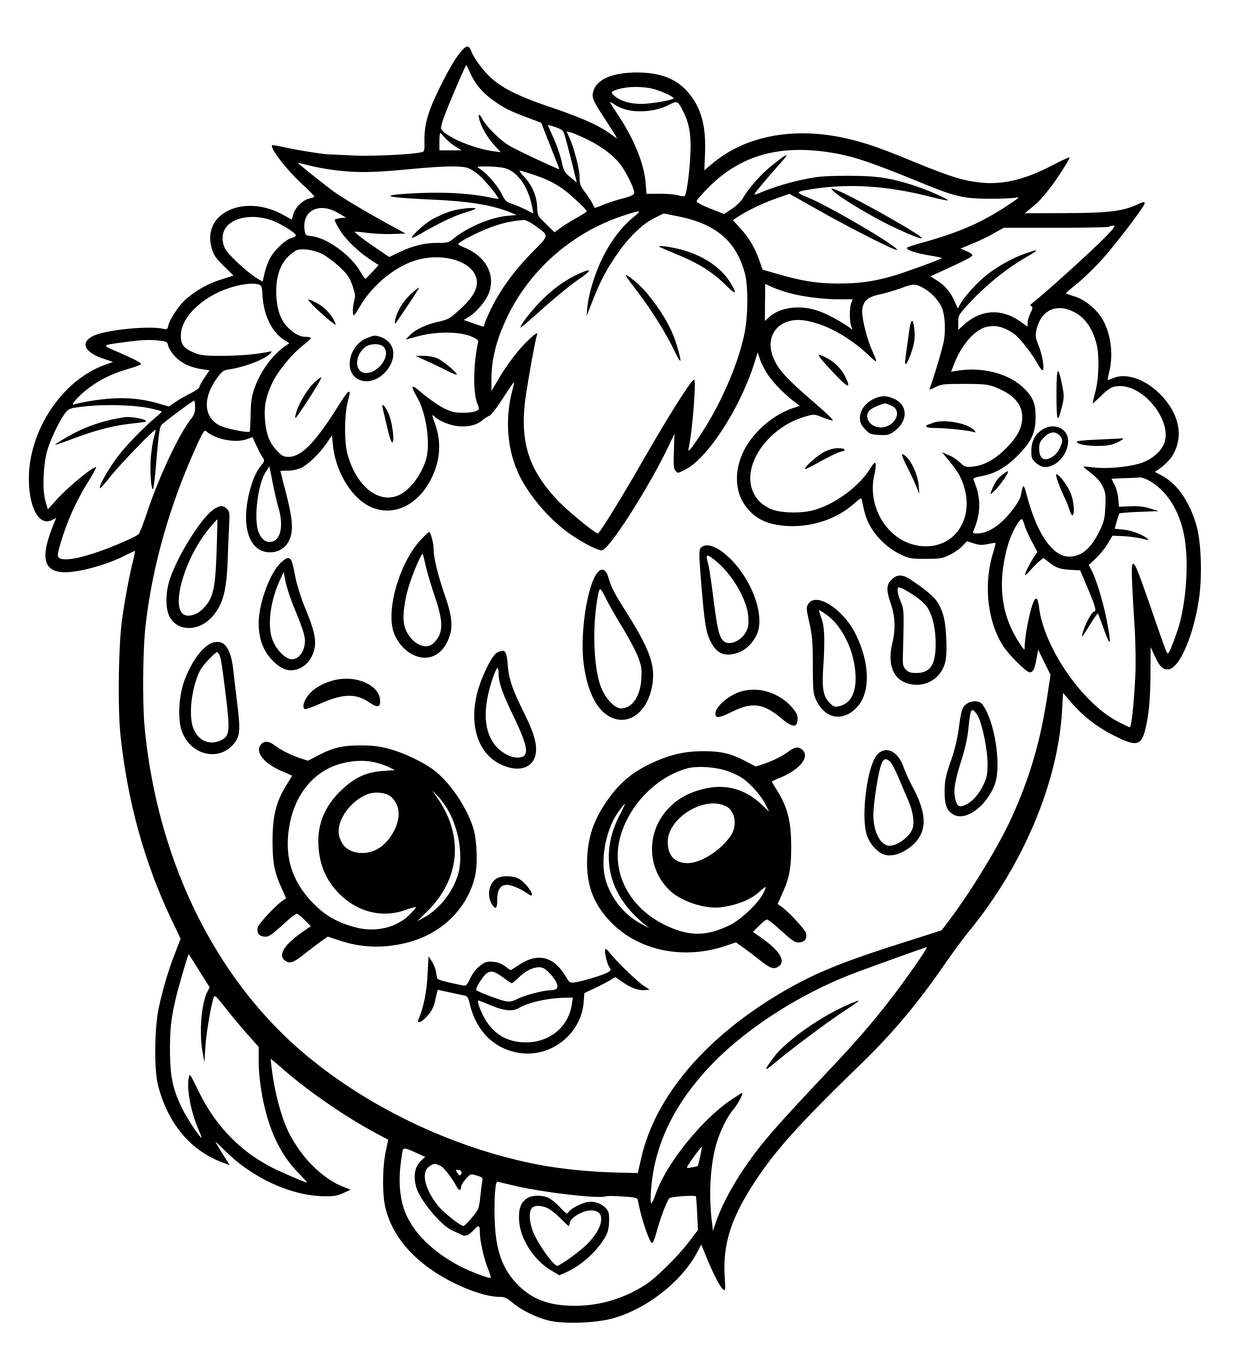 shopkins print out shopkin coloring pages printable at getdrawings free shopkins print out